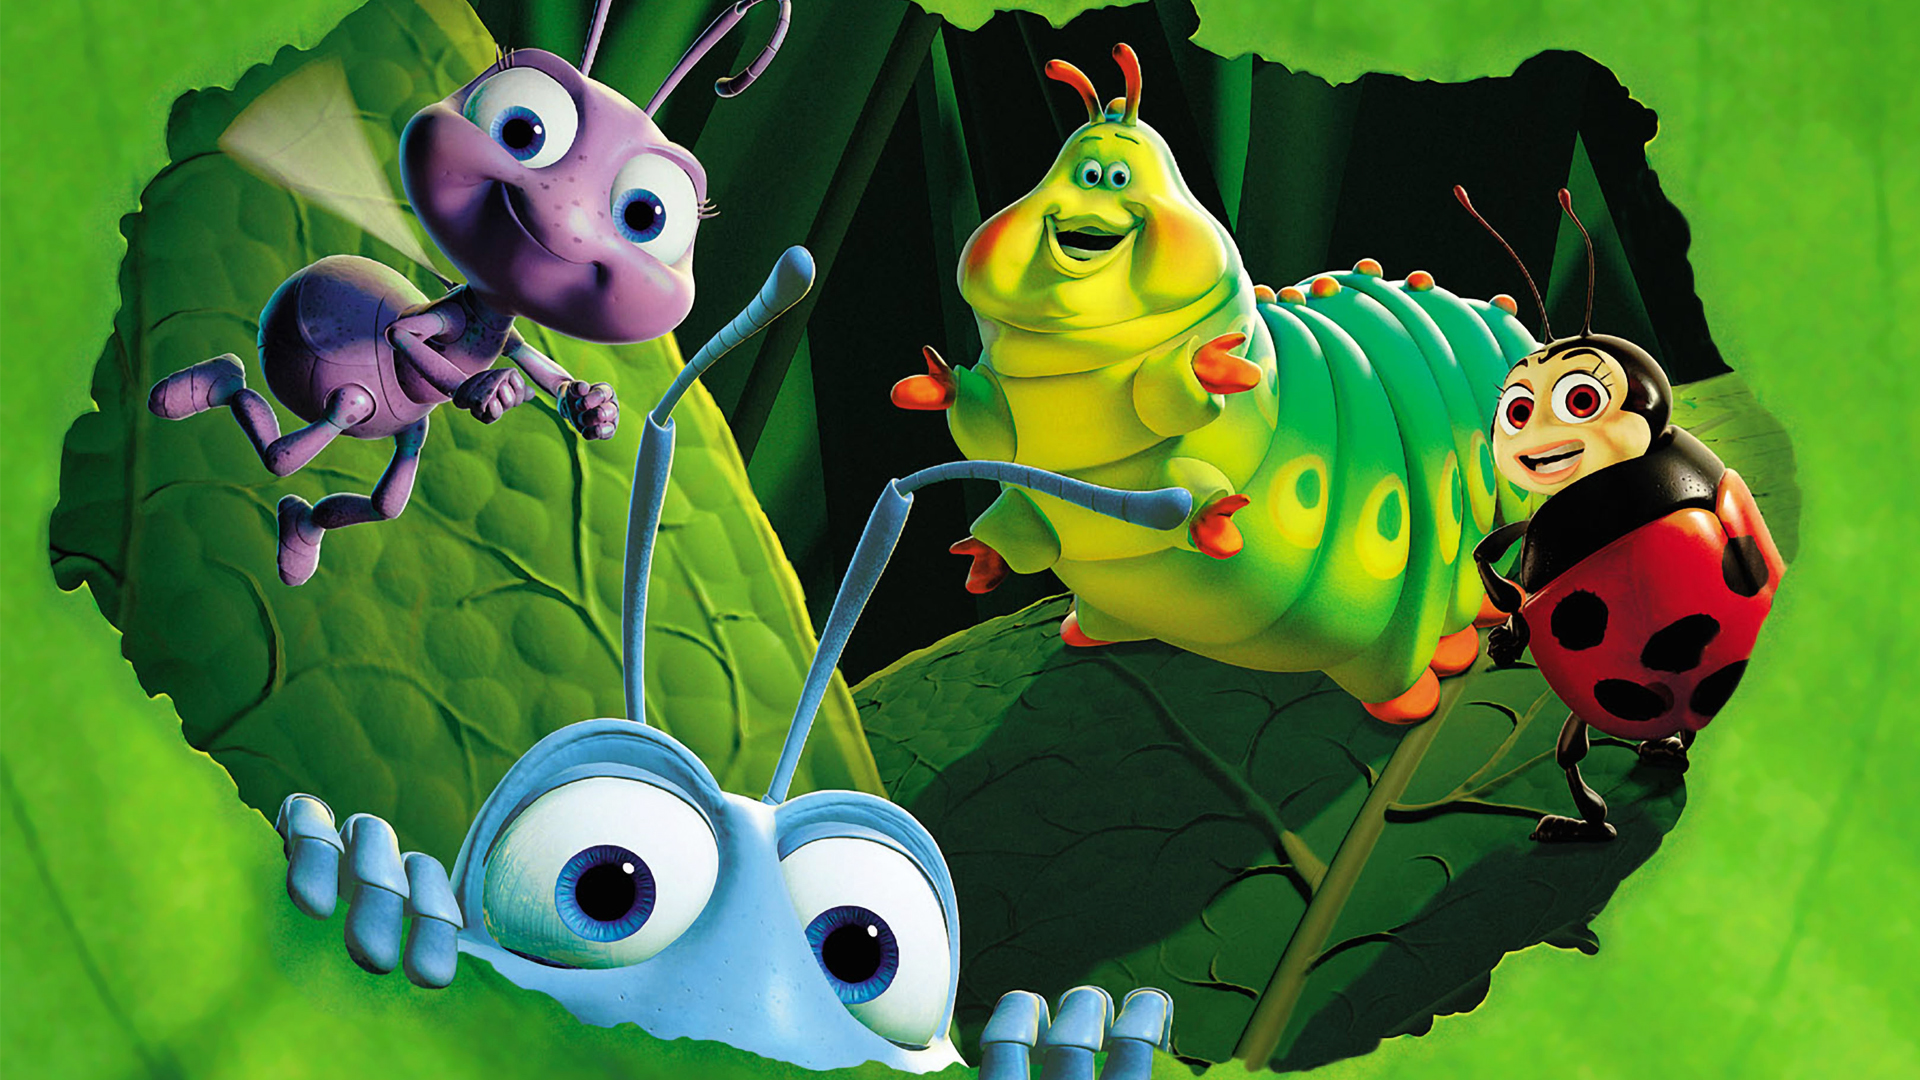 Bugs+Life+Characters FunMozar – A Bug's Life Wallpapers